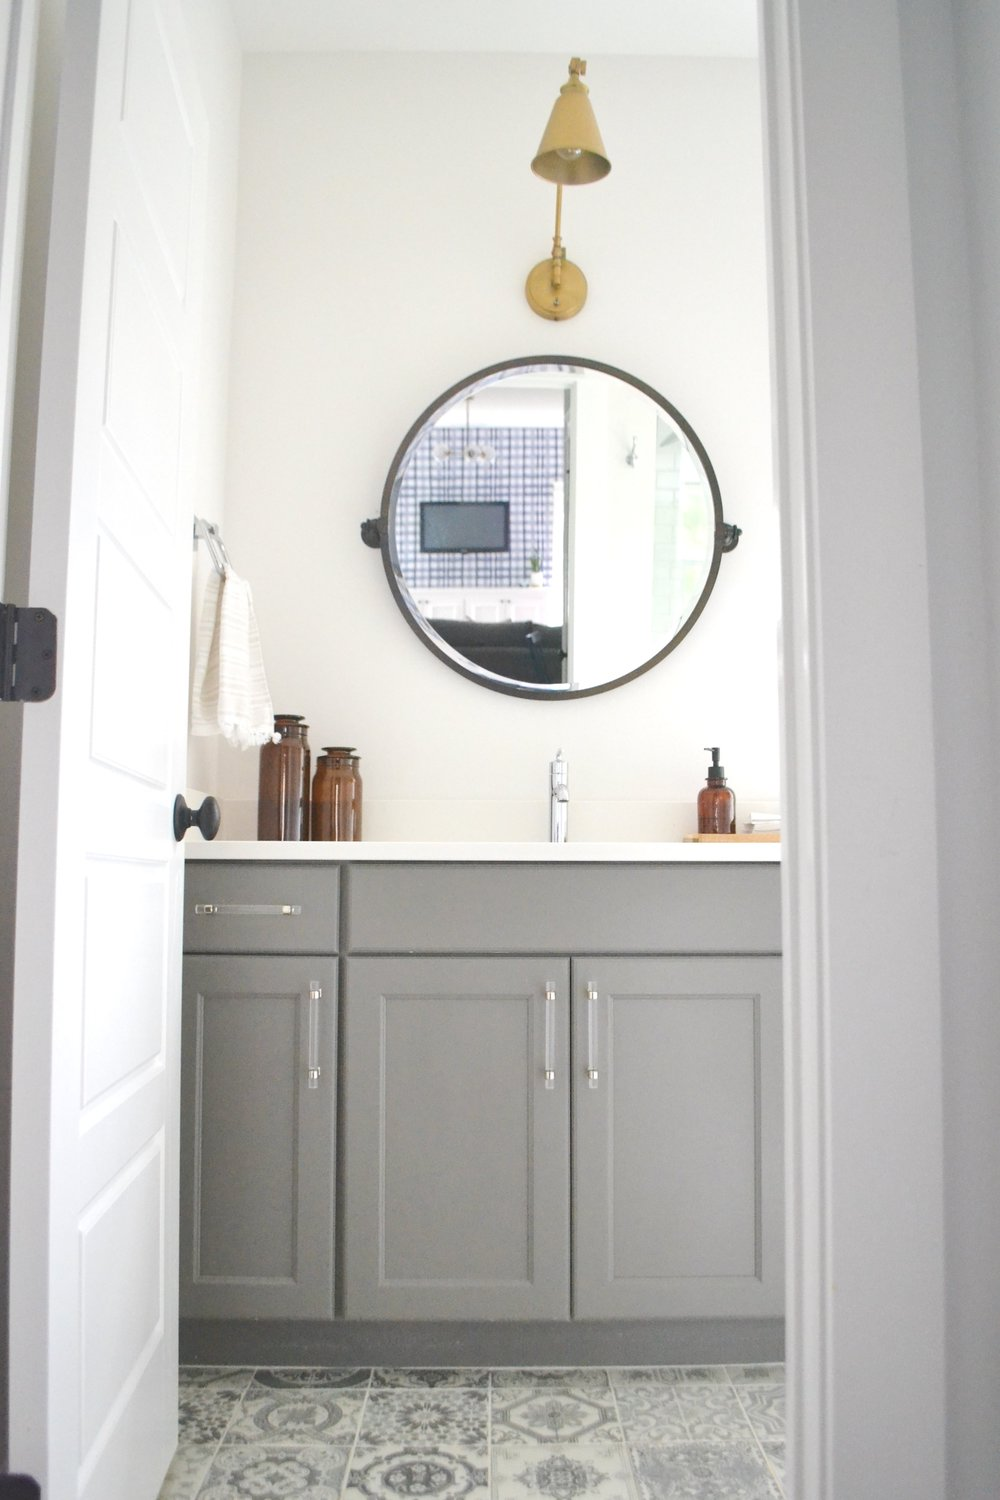 Our Guest Bath: Patterned Tile & Mixed Metals